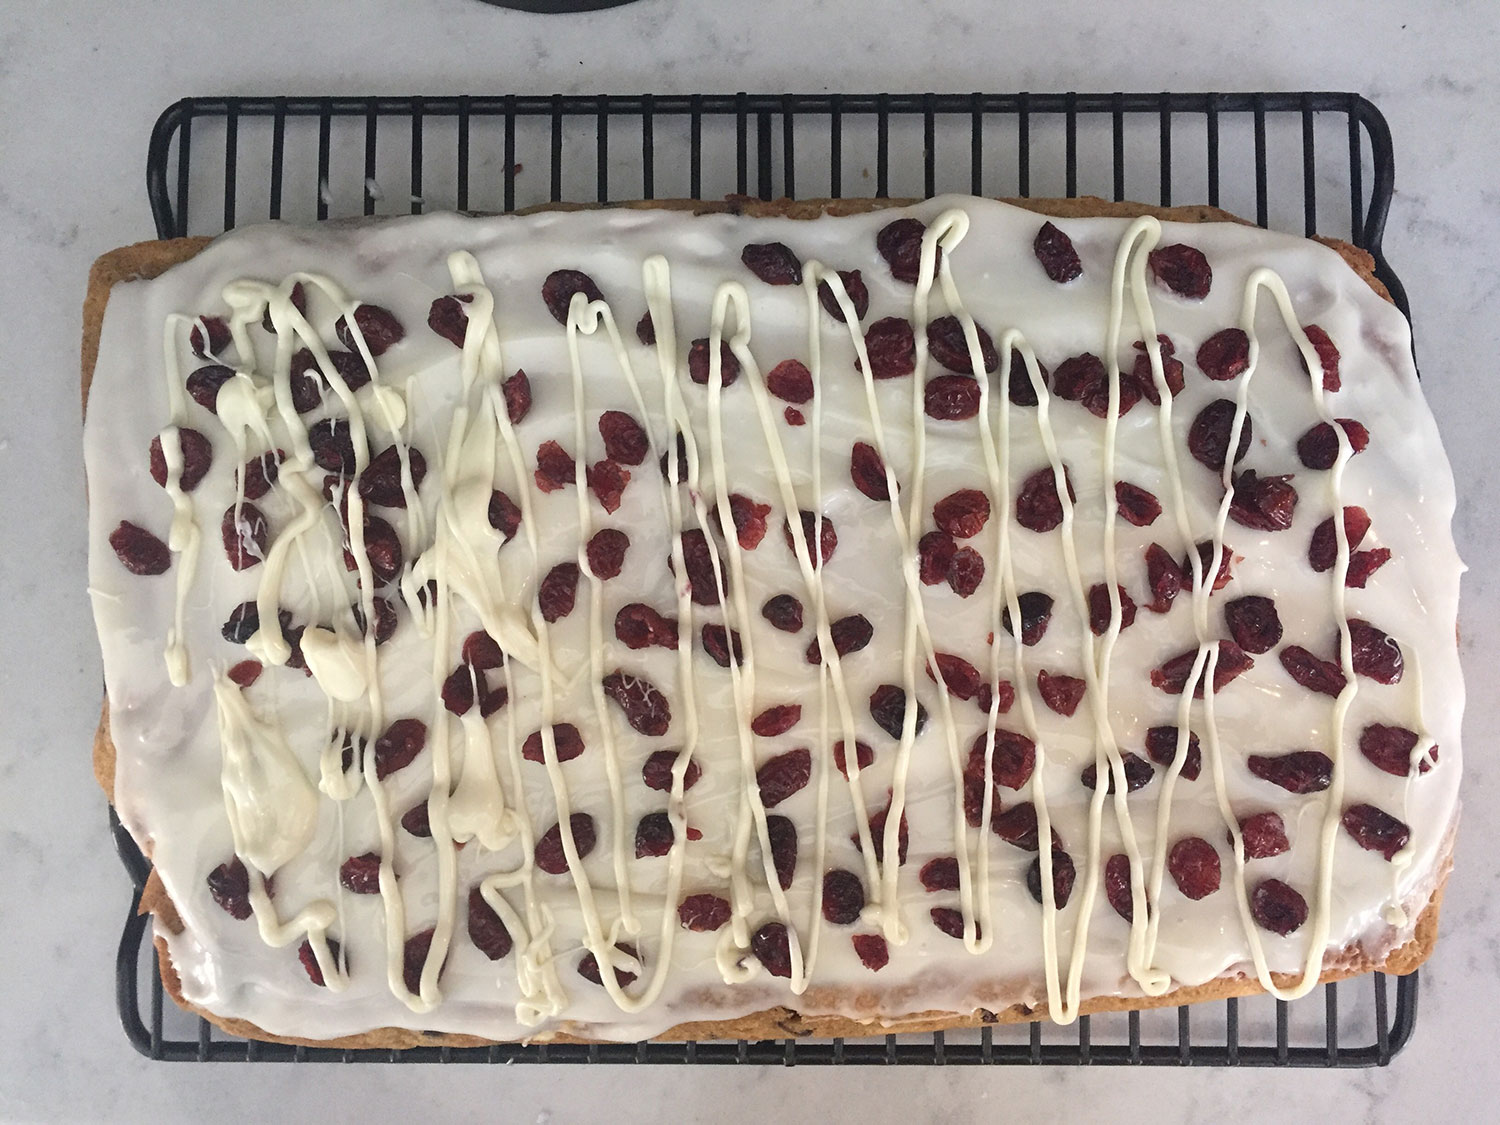 Starbucks Cranberry Bliss Bar Recipe Replica by Fitness by Eve